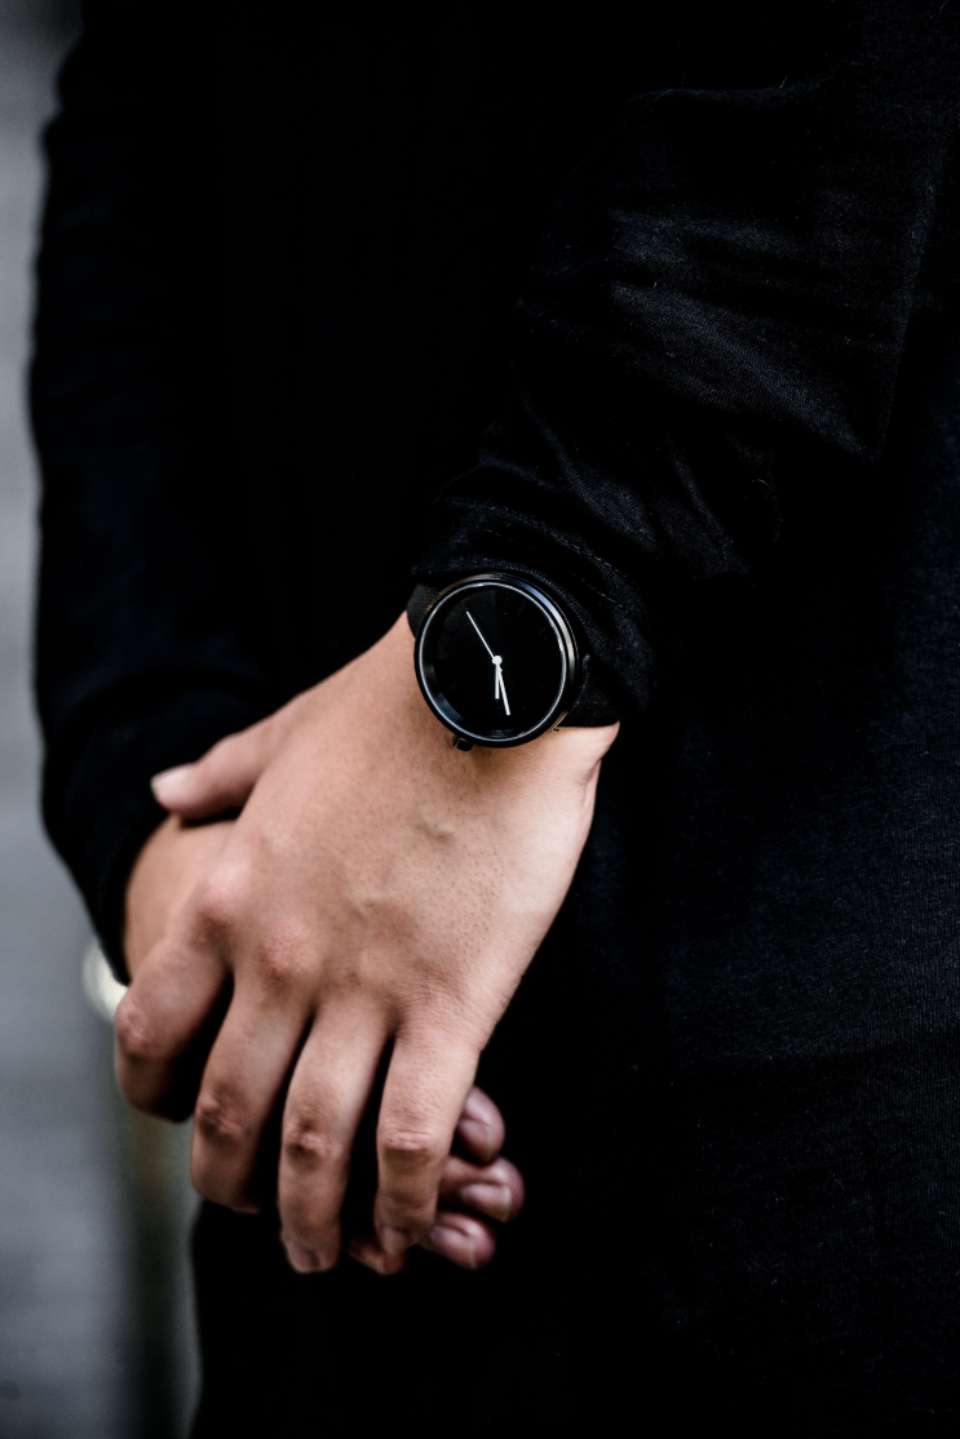 black fashion watch wristwatch time timepiece man simple minimalist clean hands person stylish lifestyle